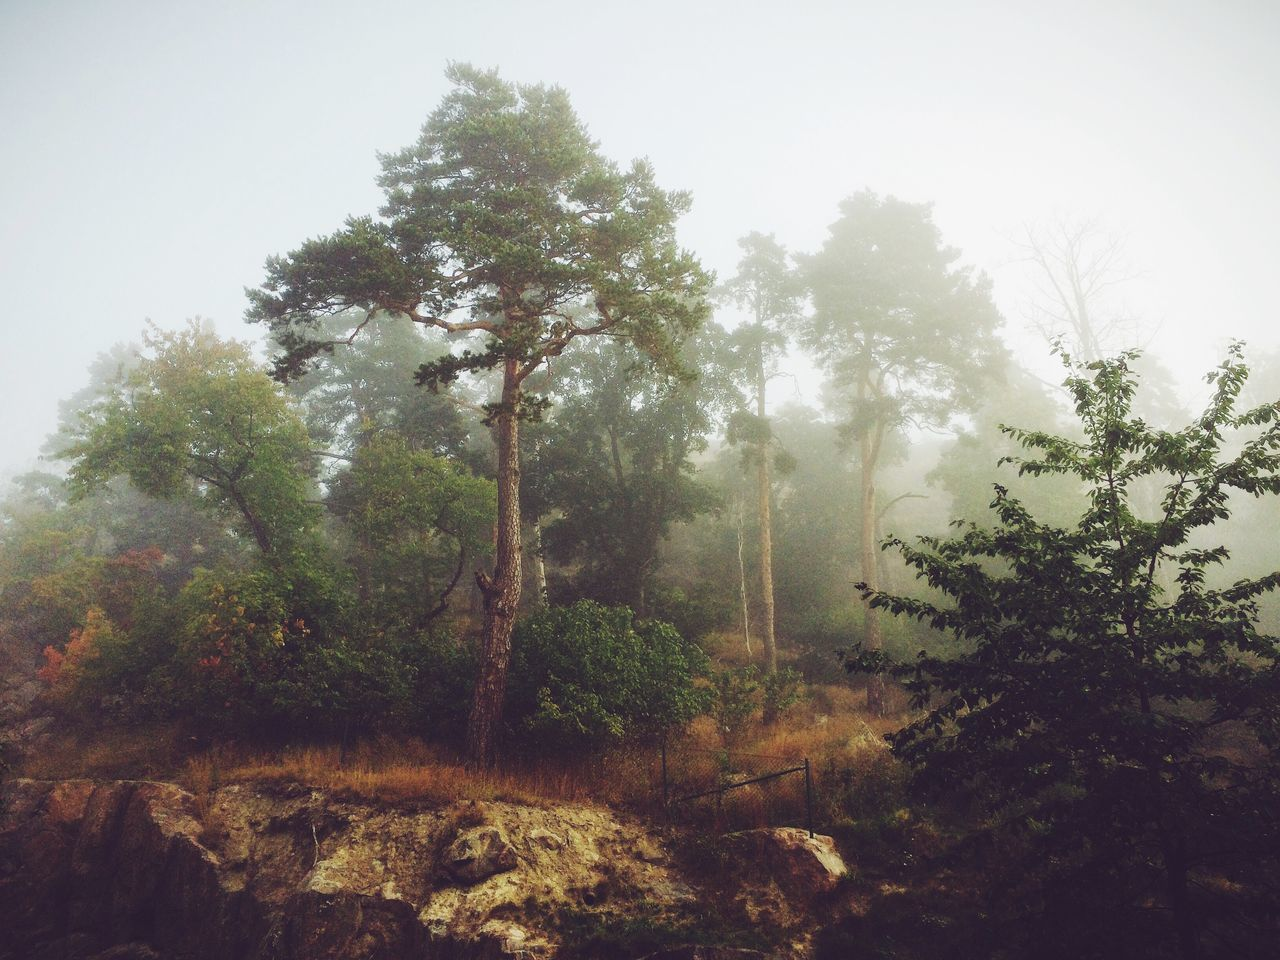 Trees Growing In Forest During Foggy Weather